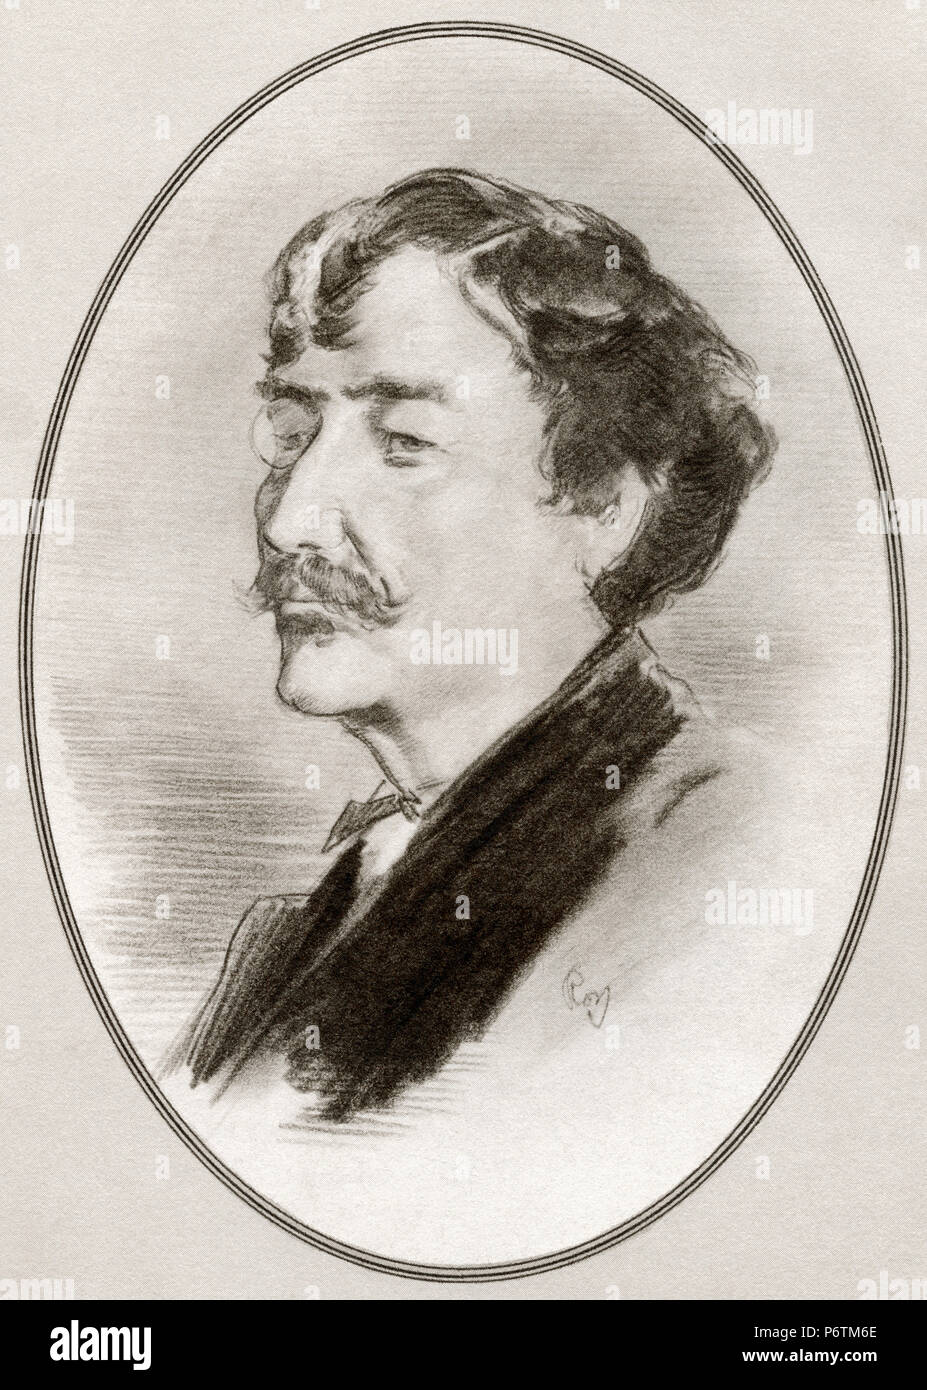 James Abbott McNeill Whistler, 1834 - 1903.  American artist.  Illustration by Gordon Ross, American artist and illustrator (1873-1946), from Living Biographies of Great Painters. - Stock Image